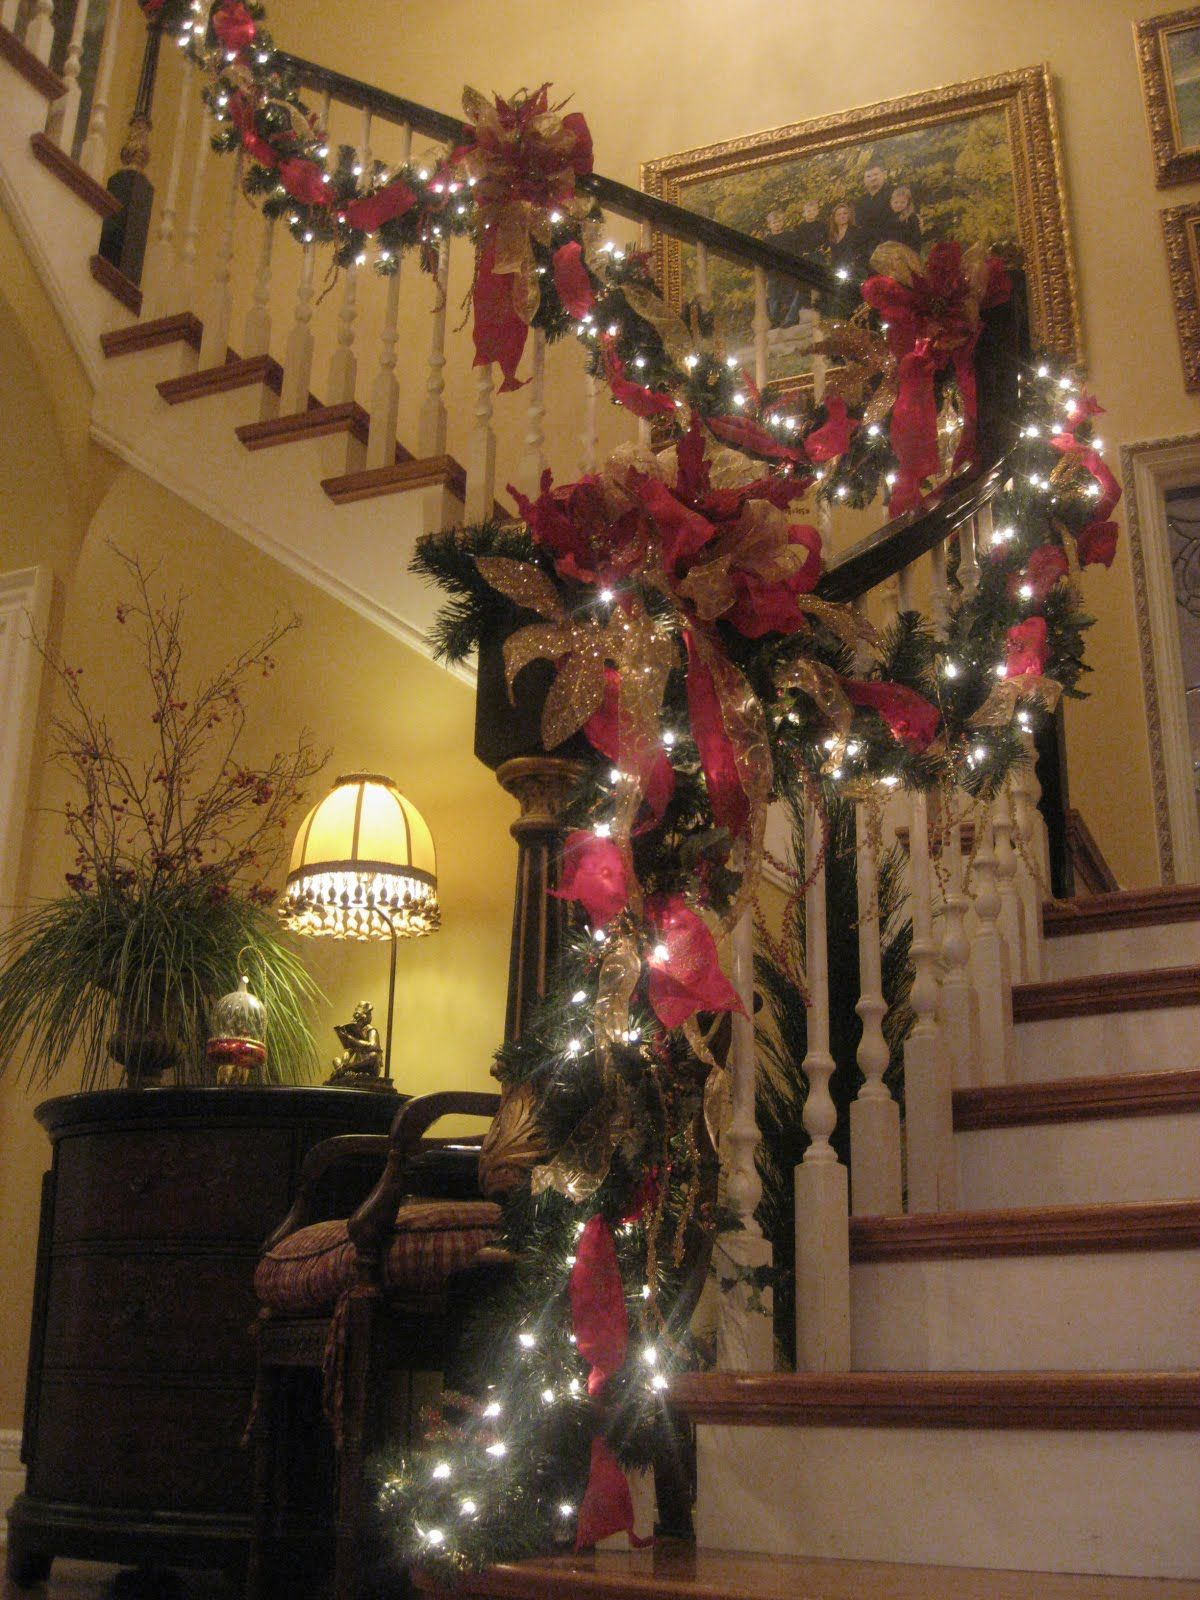 Gorgeous garland on stairway